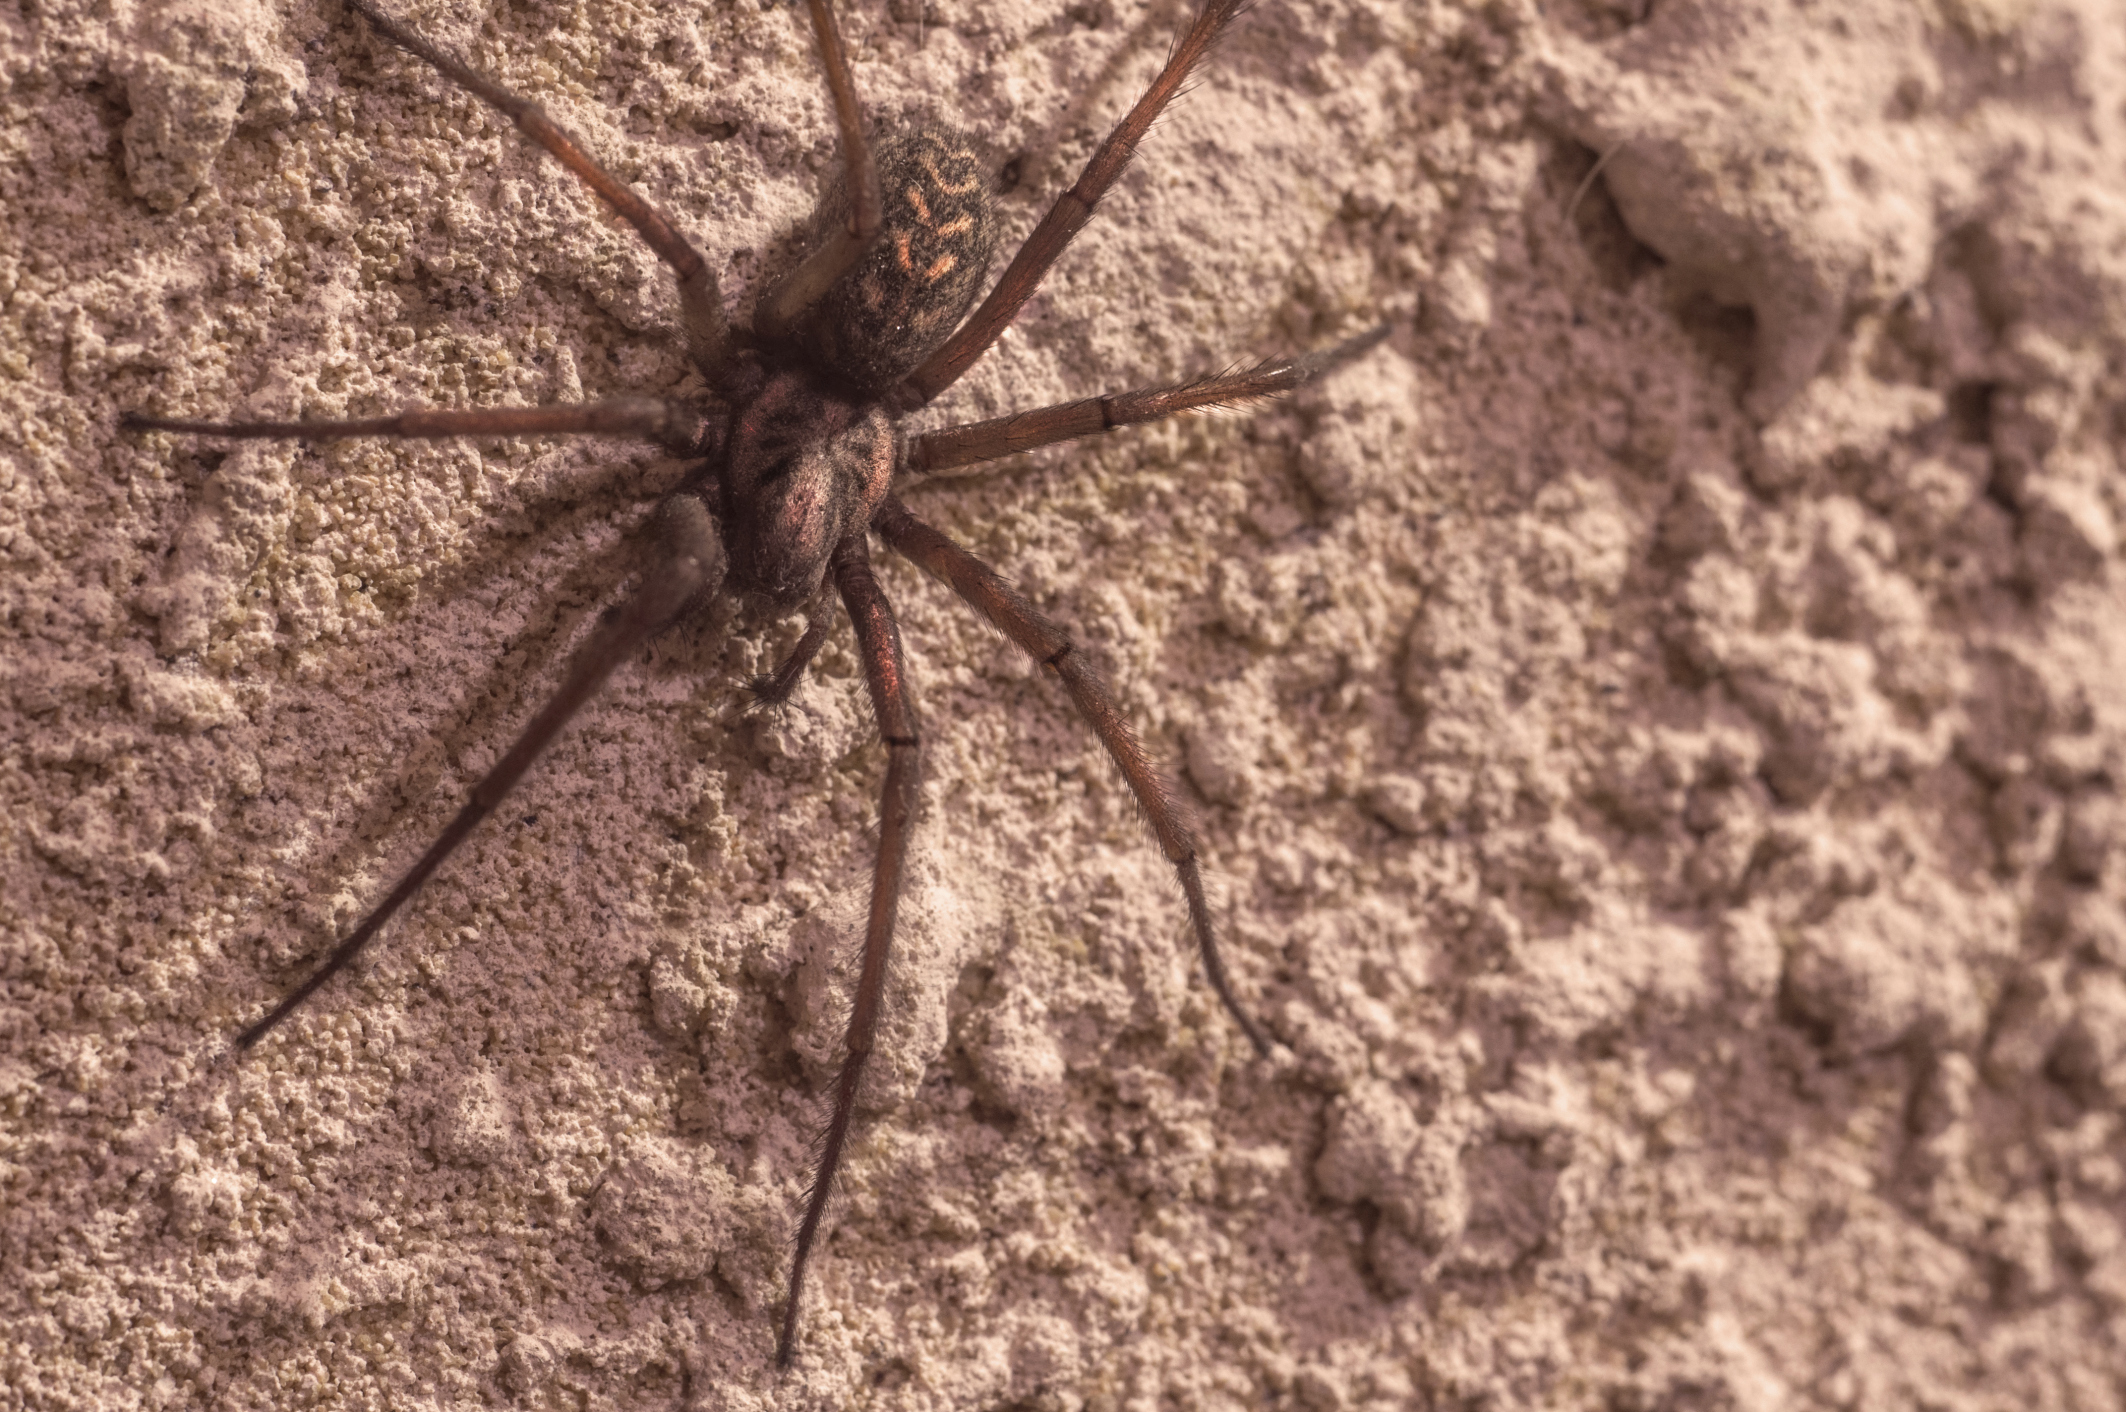 Brown Recluse Spider Bite Signs Stages Symptoms and Treatment